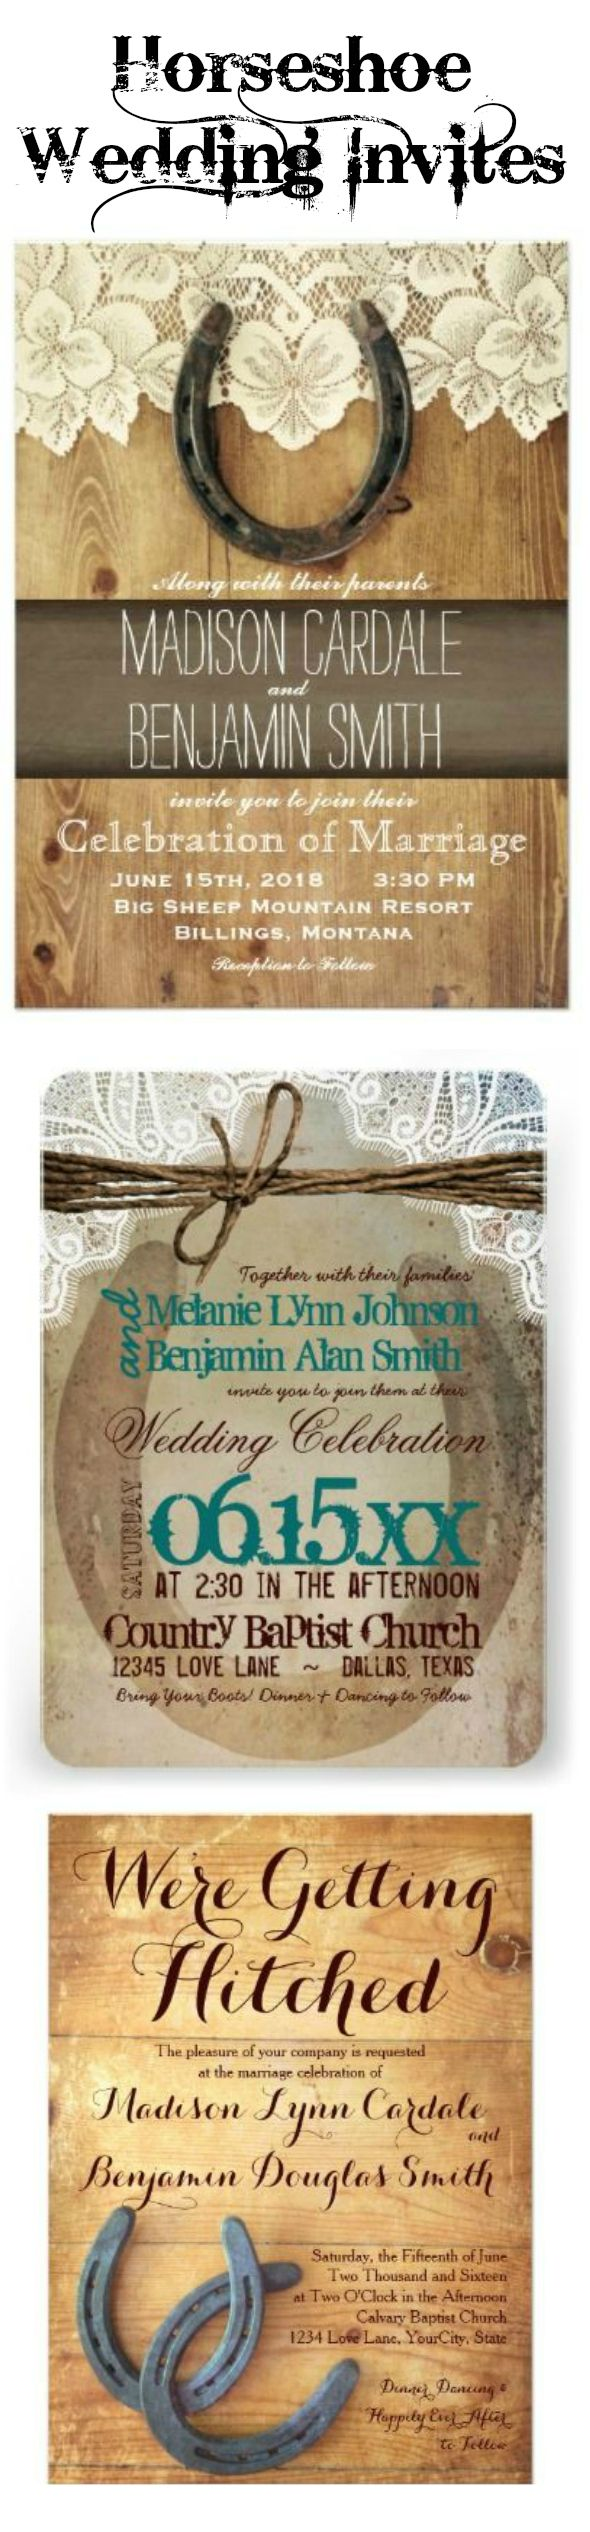 Horseshoe Wedding Invitations for a country western